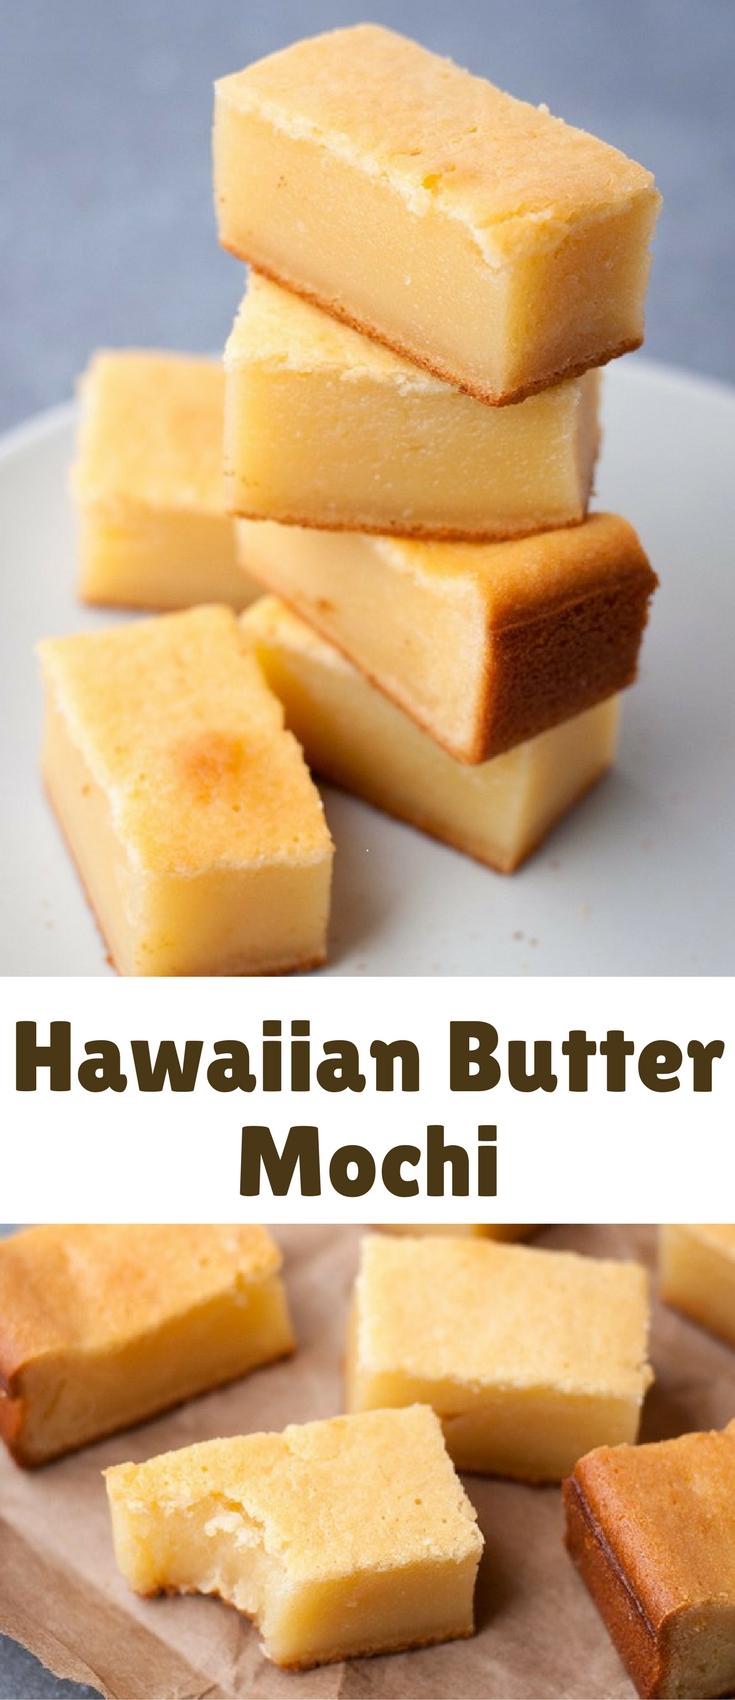 Butter mochi is a classic Hawaiian treat made with coconut milk and mochiko (glutinous rice flour). All you have to do is mix and bake!